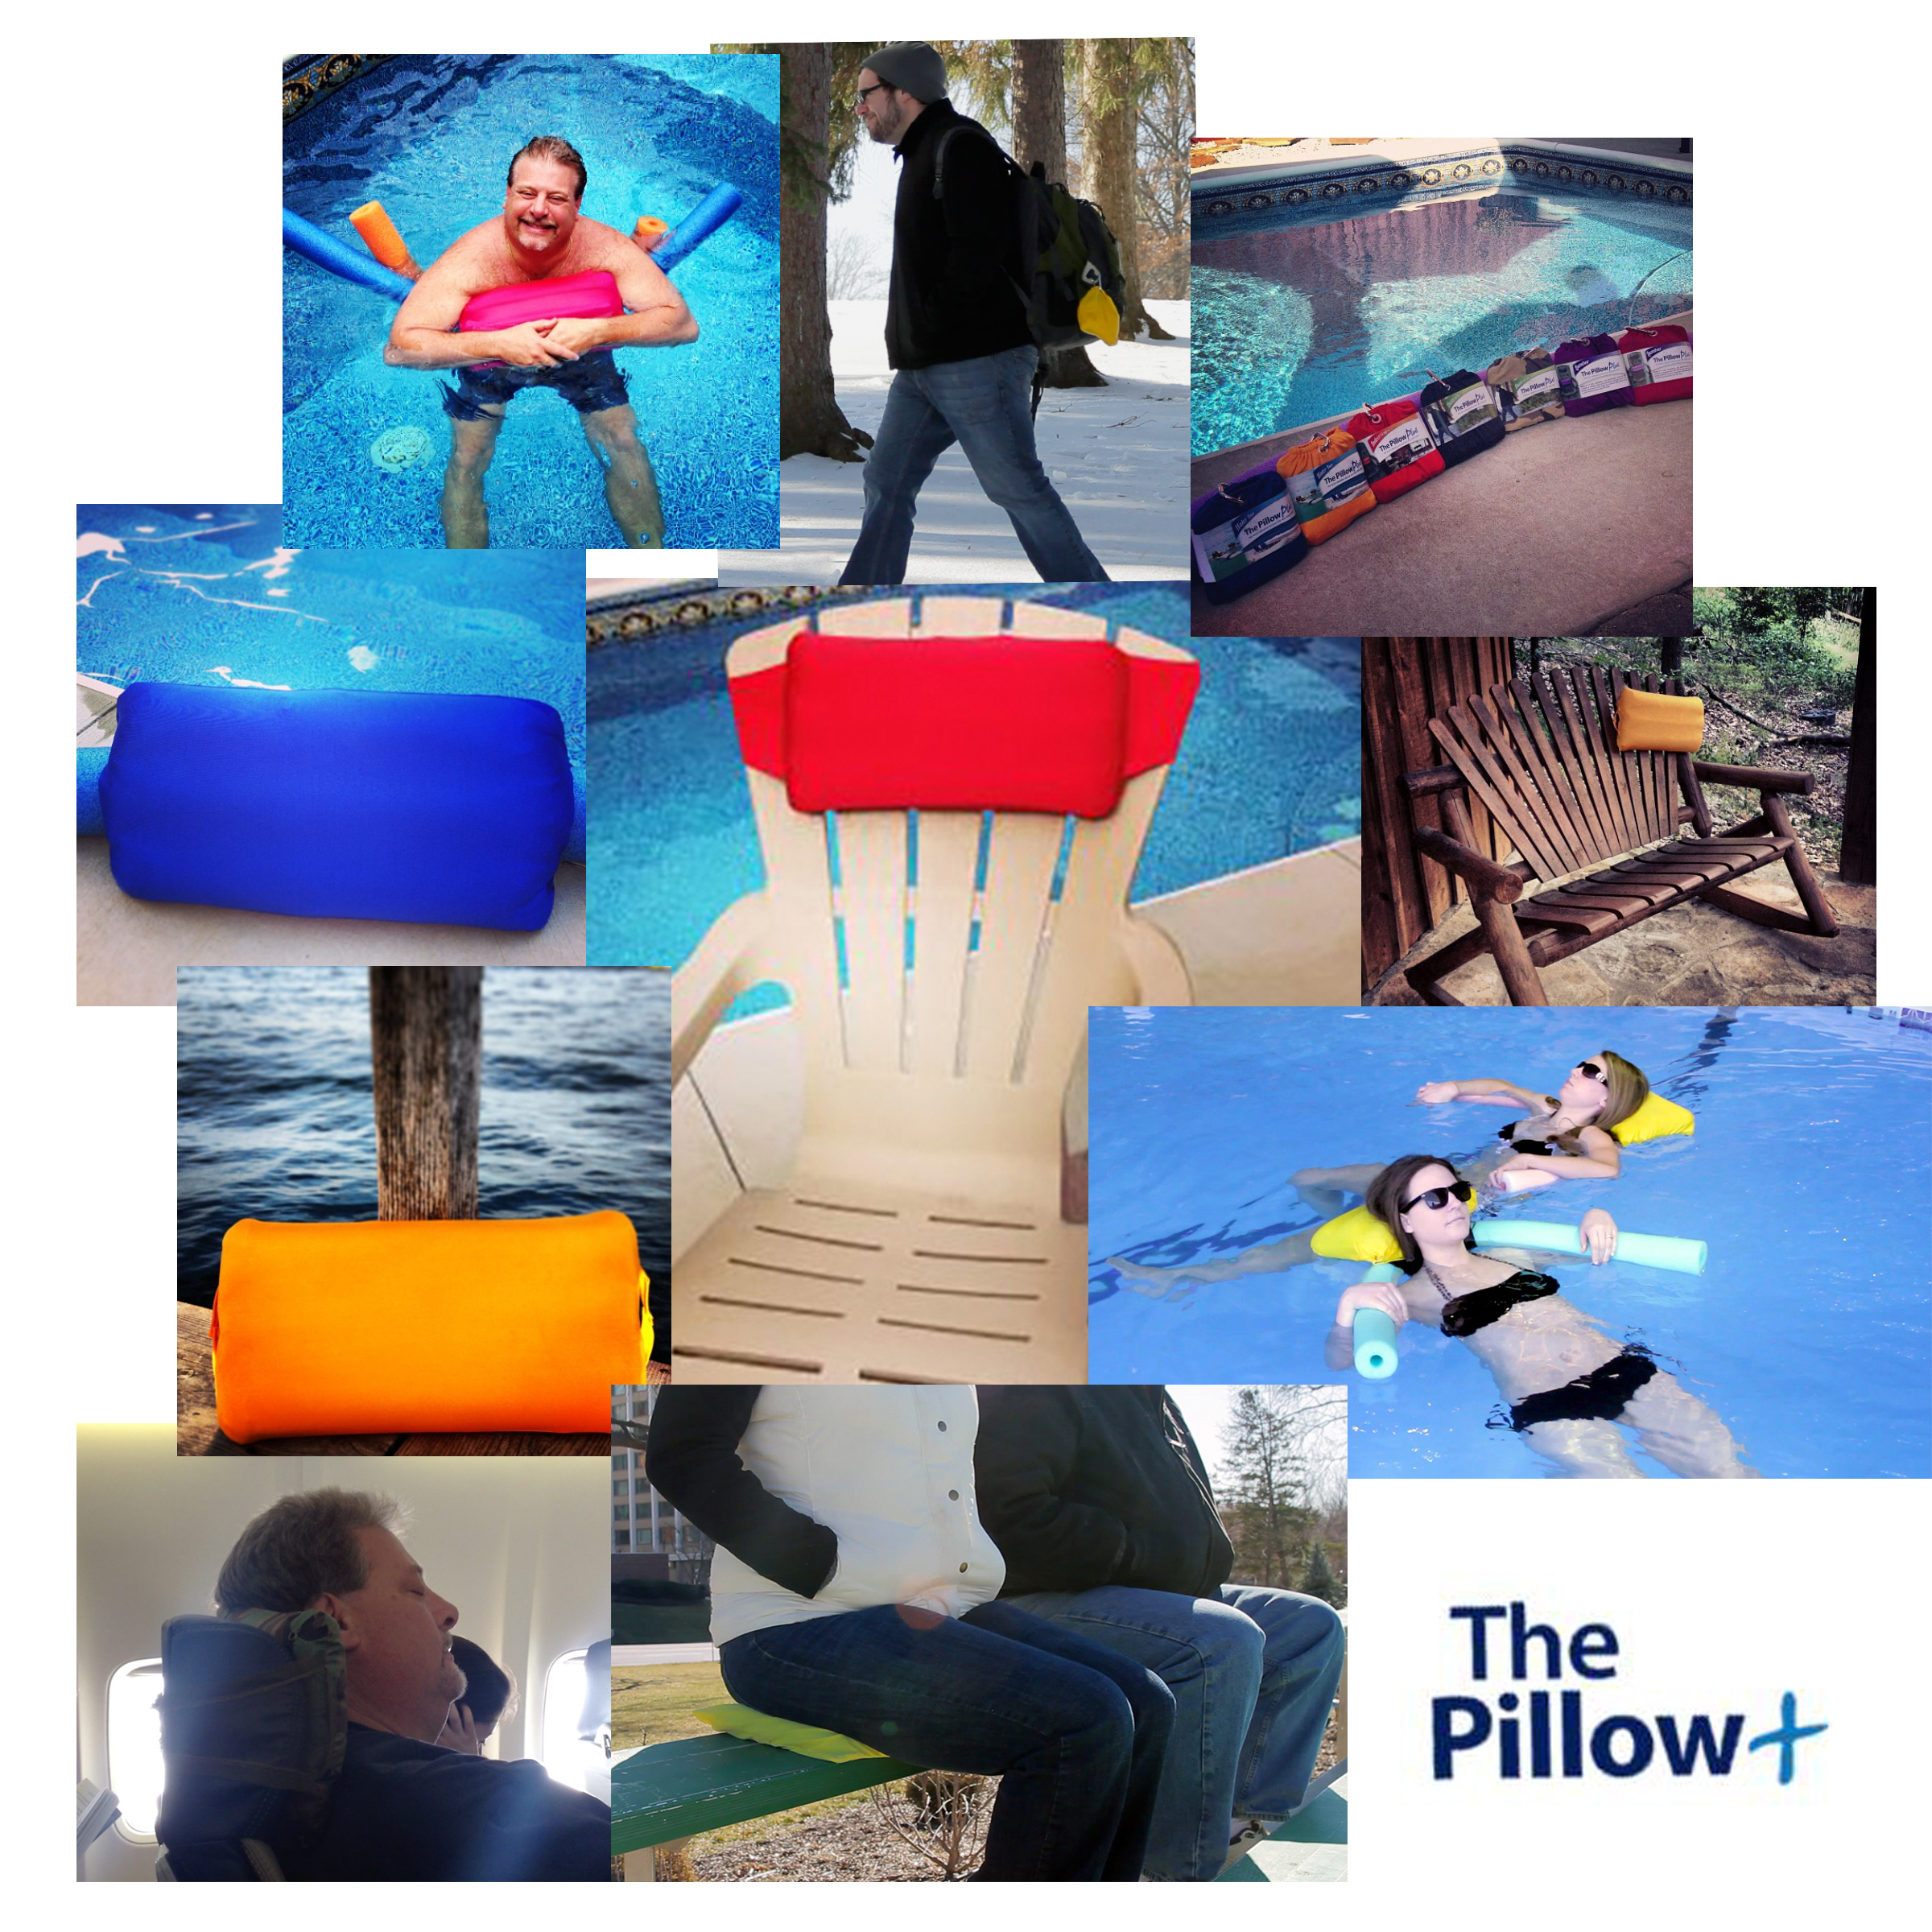 The most versatile pillow you will ever need by The Pillow+